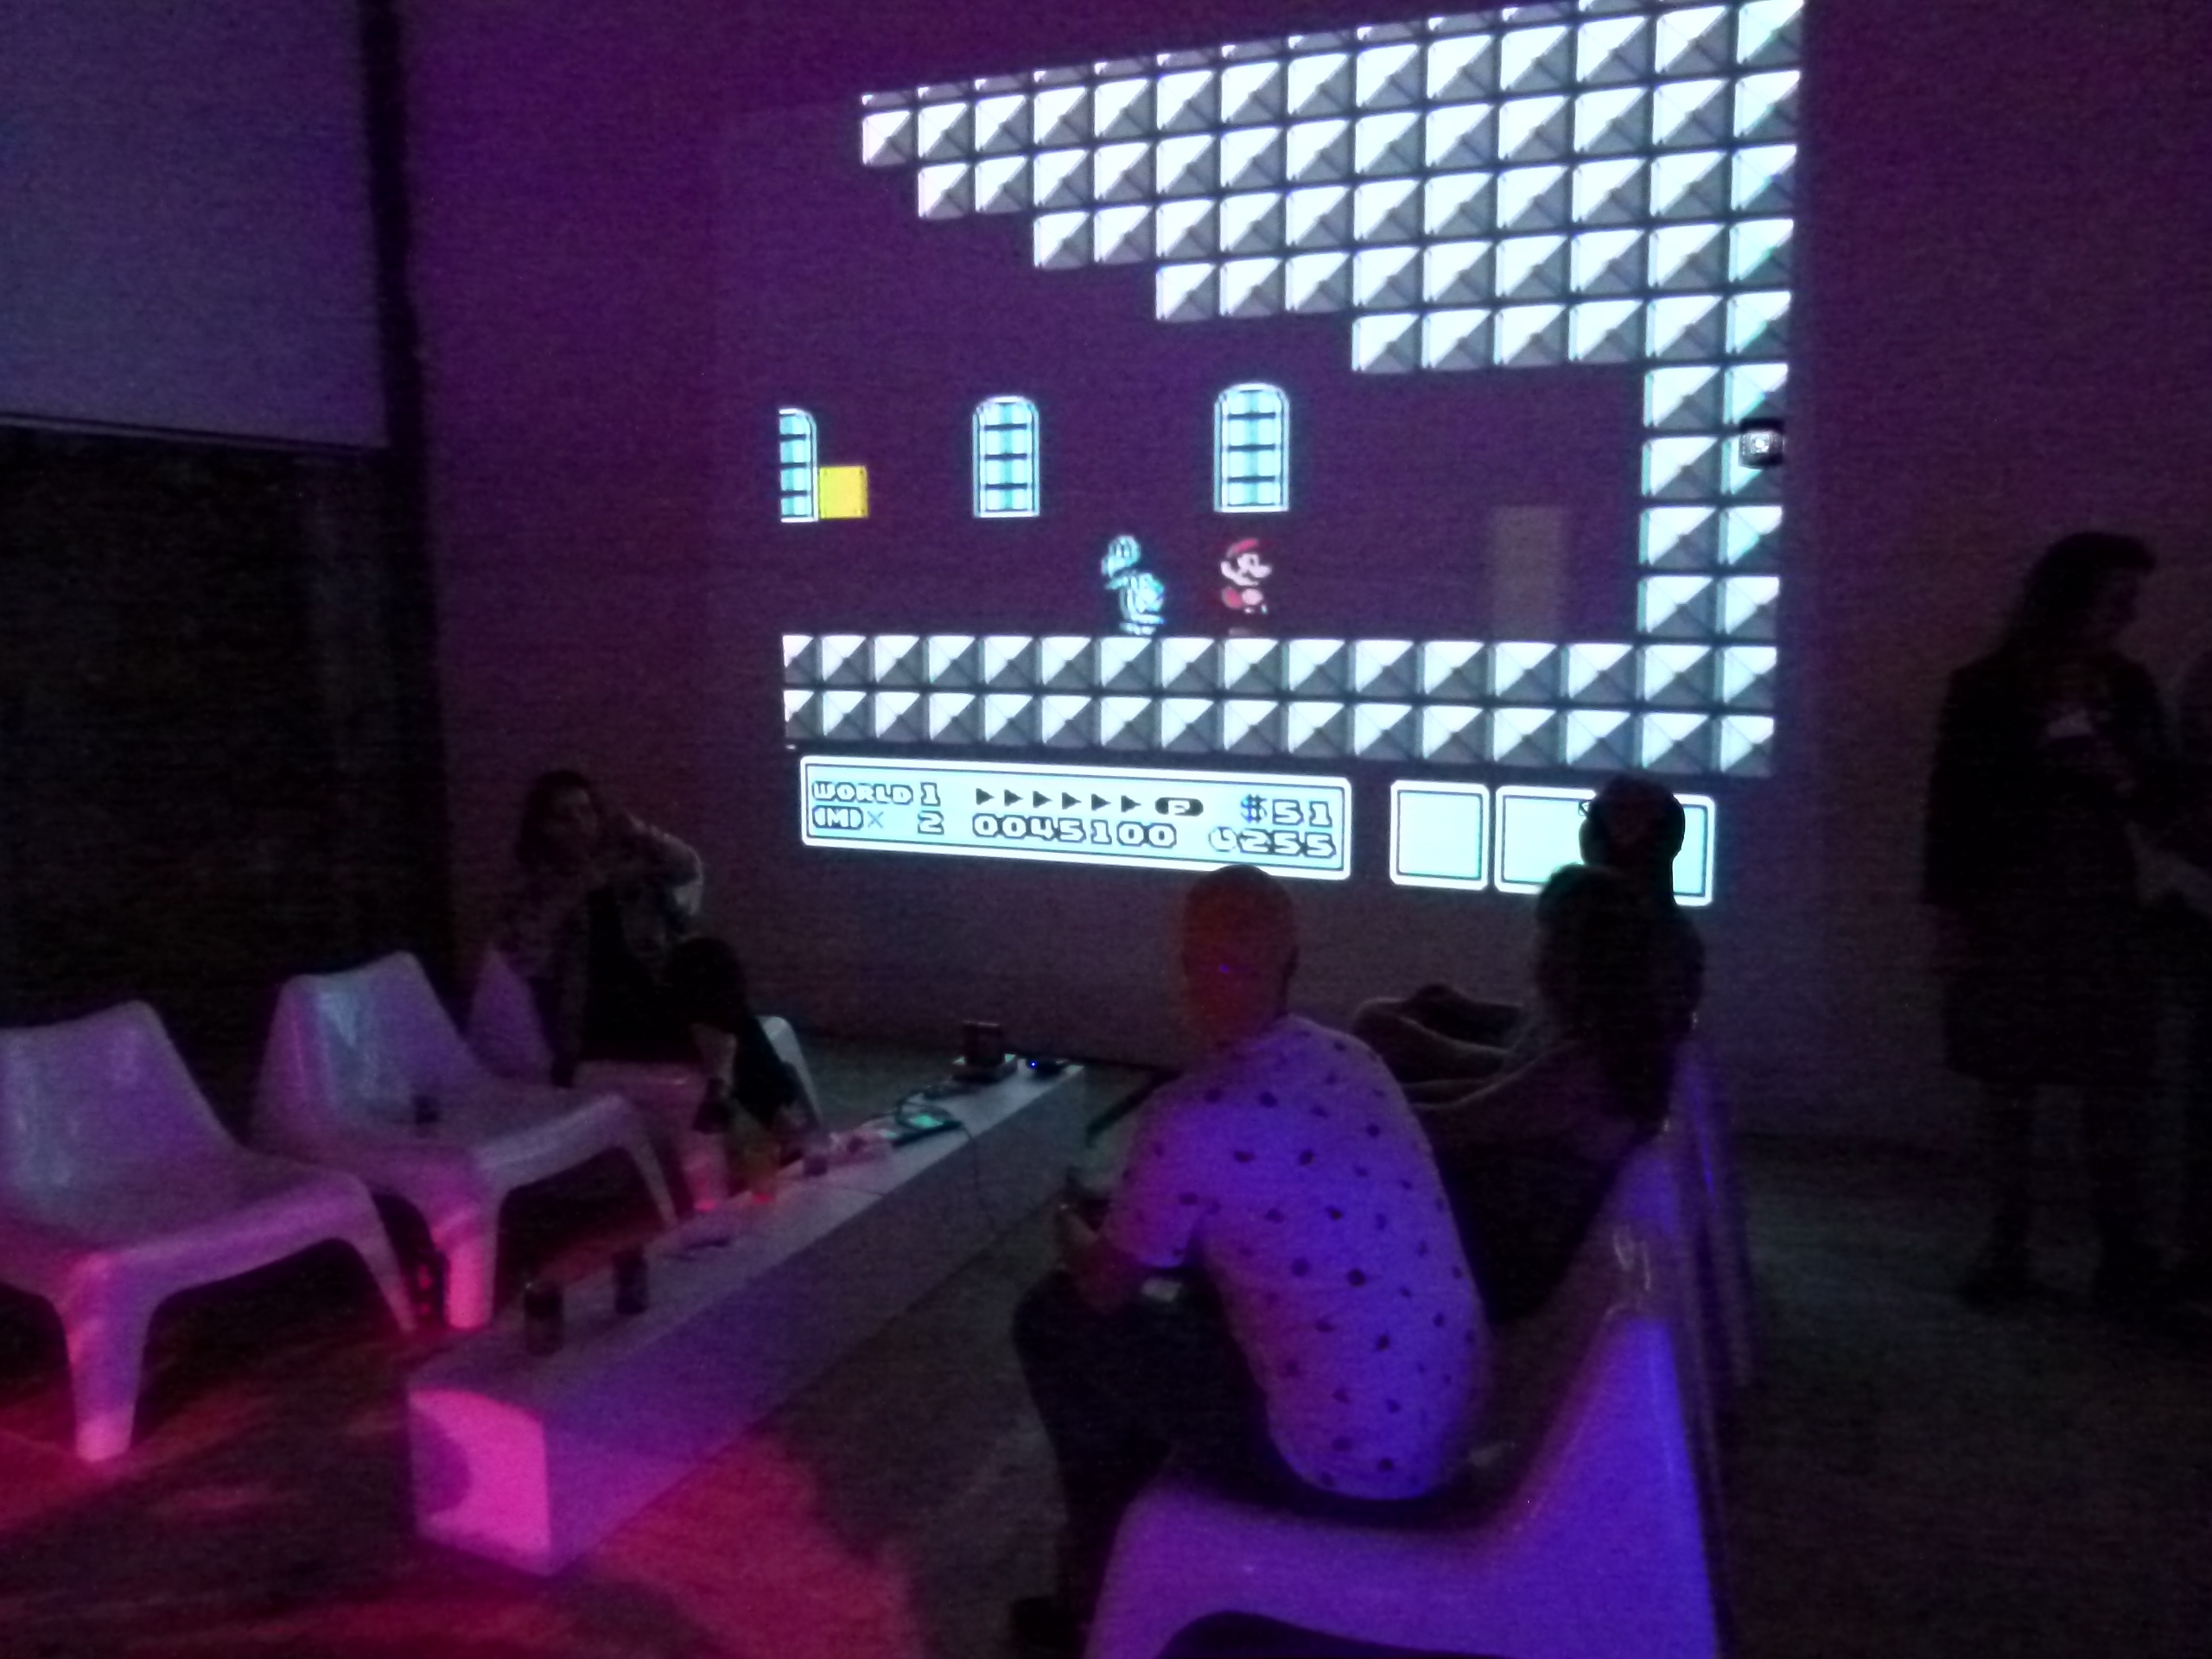 You could even play video games that were projected onto the wall.